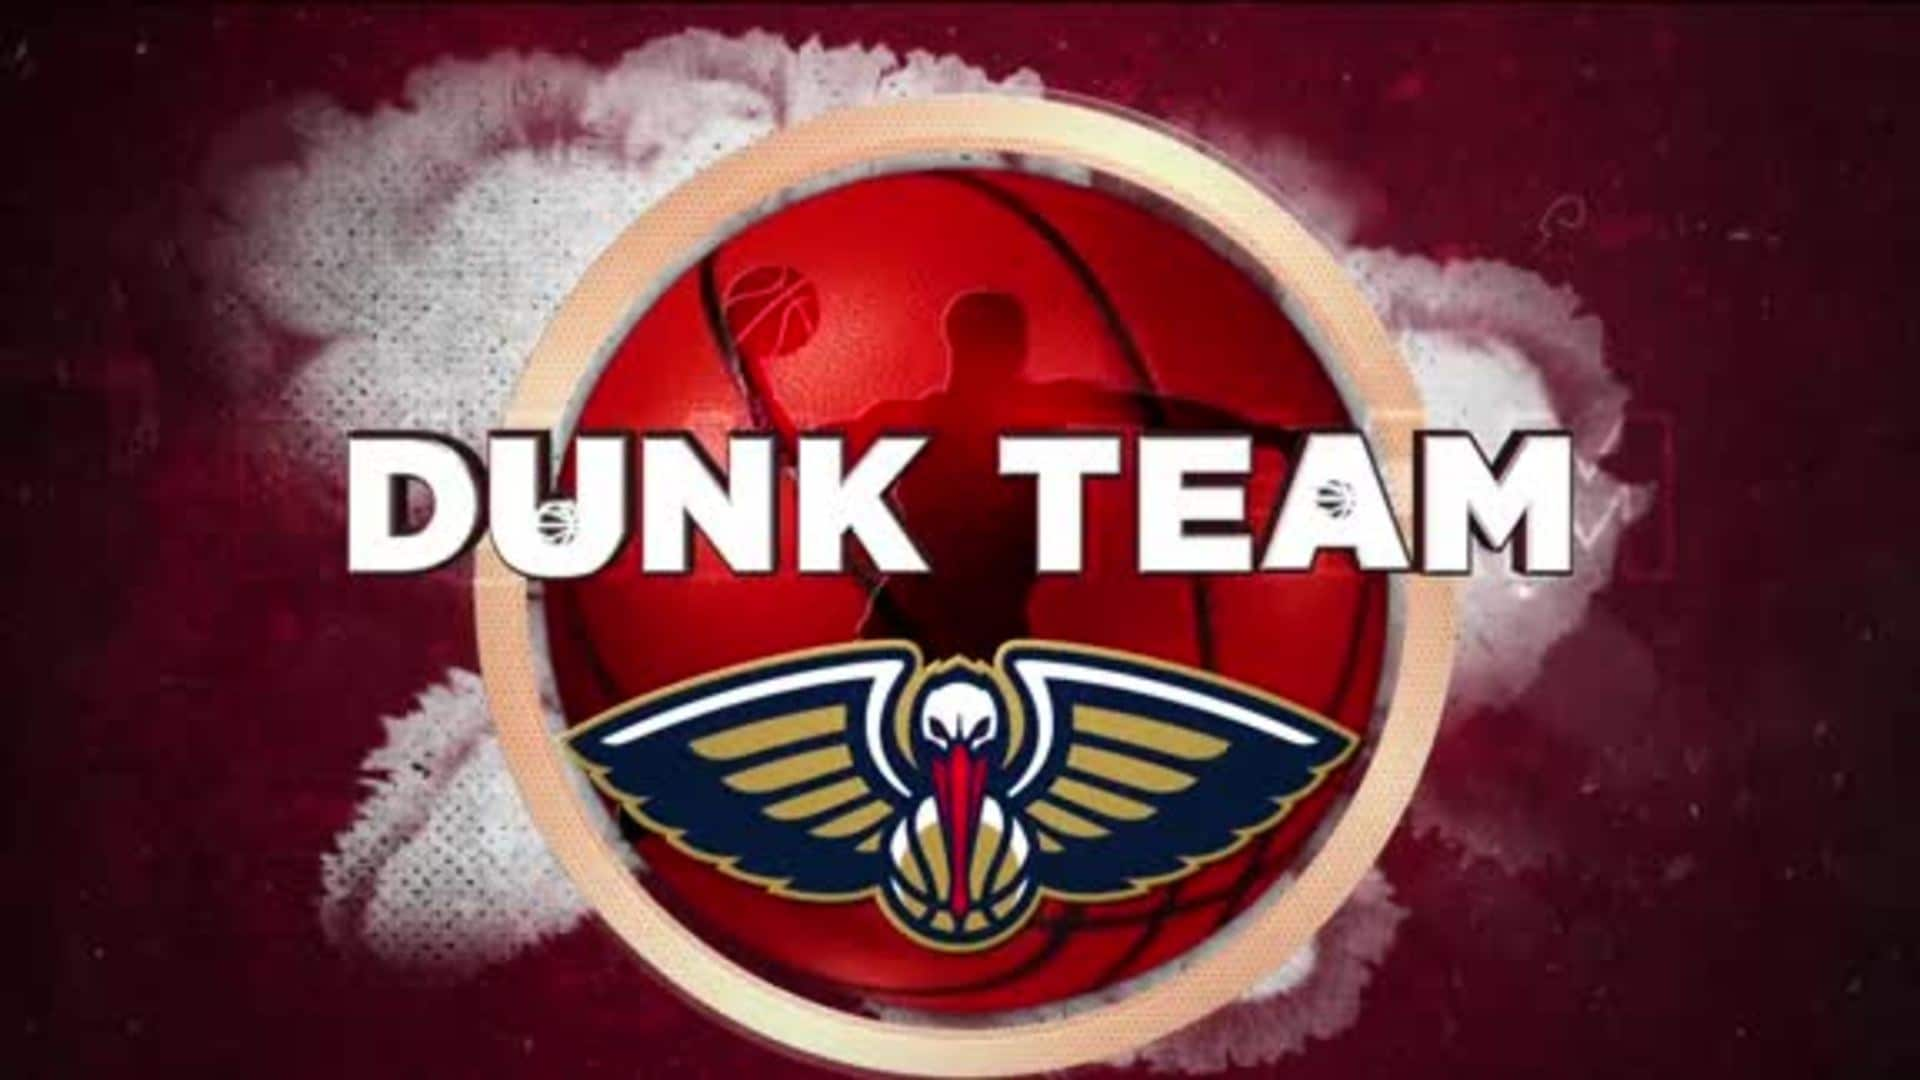 Entertainment: Pelicans Dunk Team 4th quarter performance - January 18 vs. L.A. Clippers